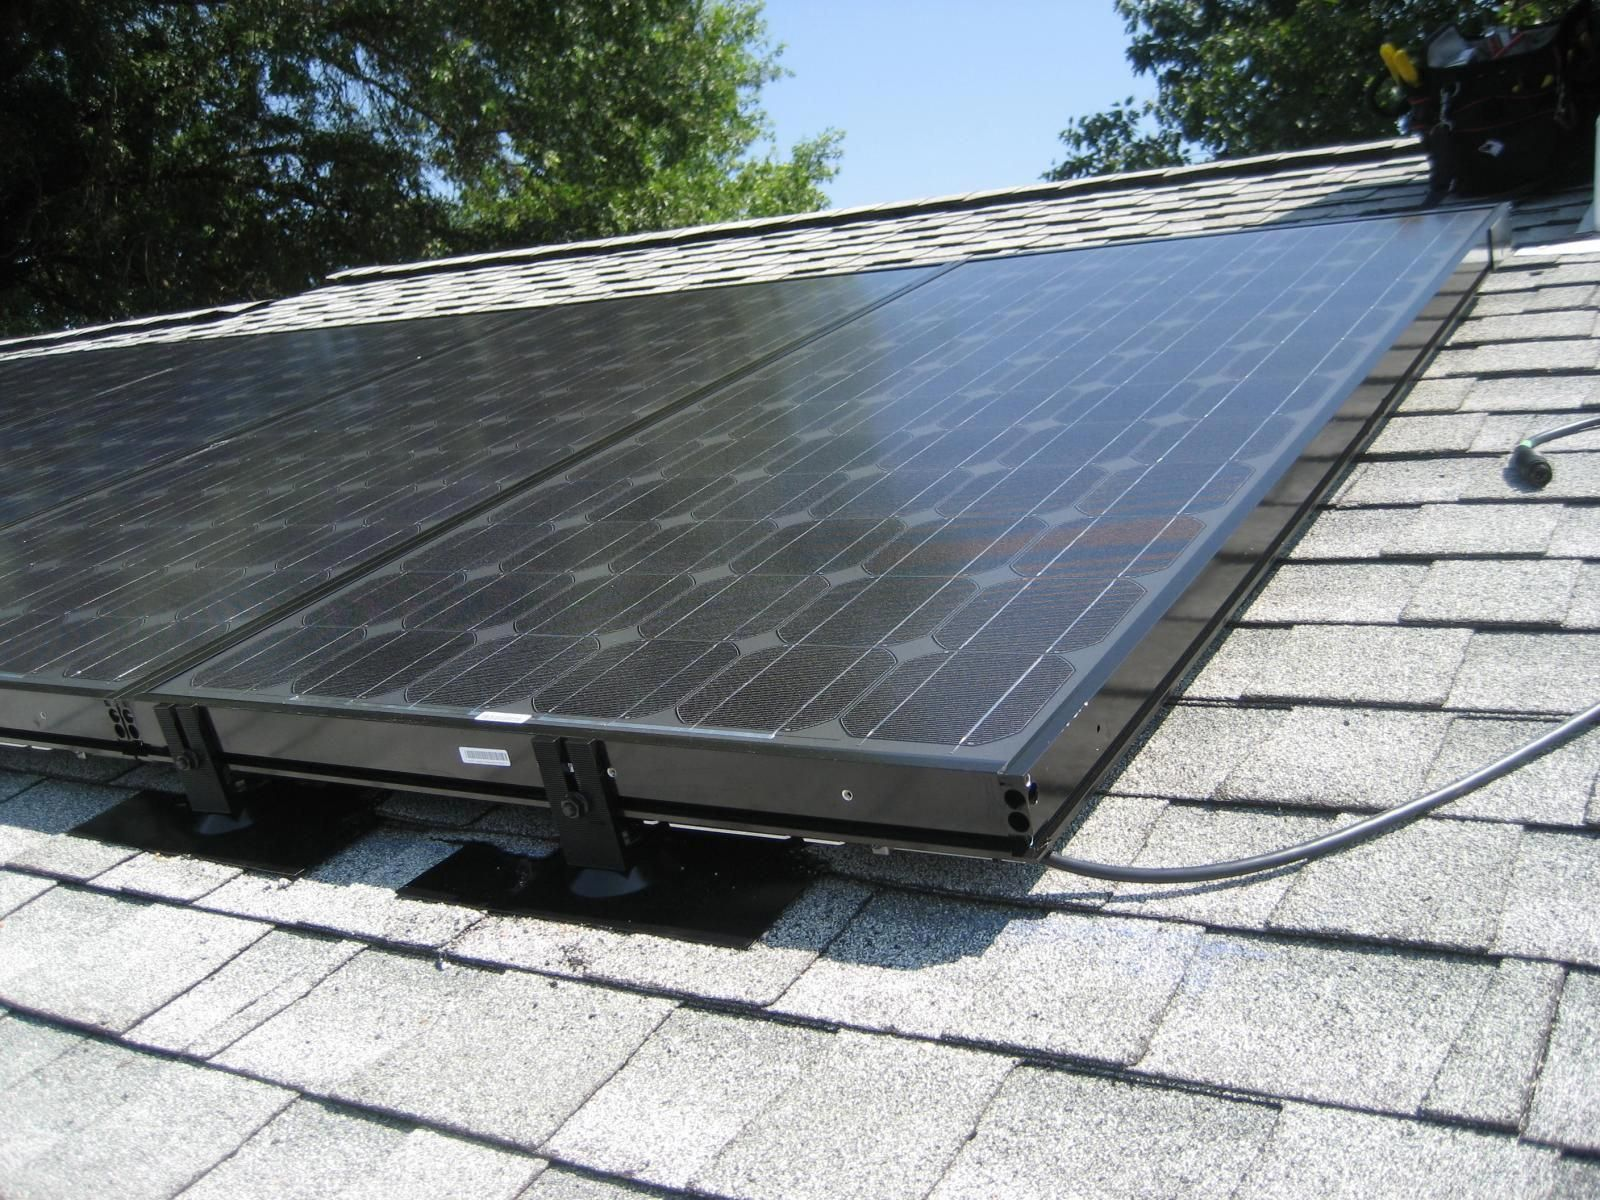 30 Tax Credit Reduces Cost Of Residential Solar For Now Solarpanels Solarenergy Solarpower Solargenerator Solarpanelkits So